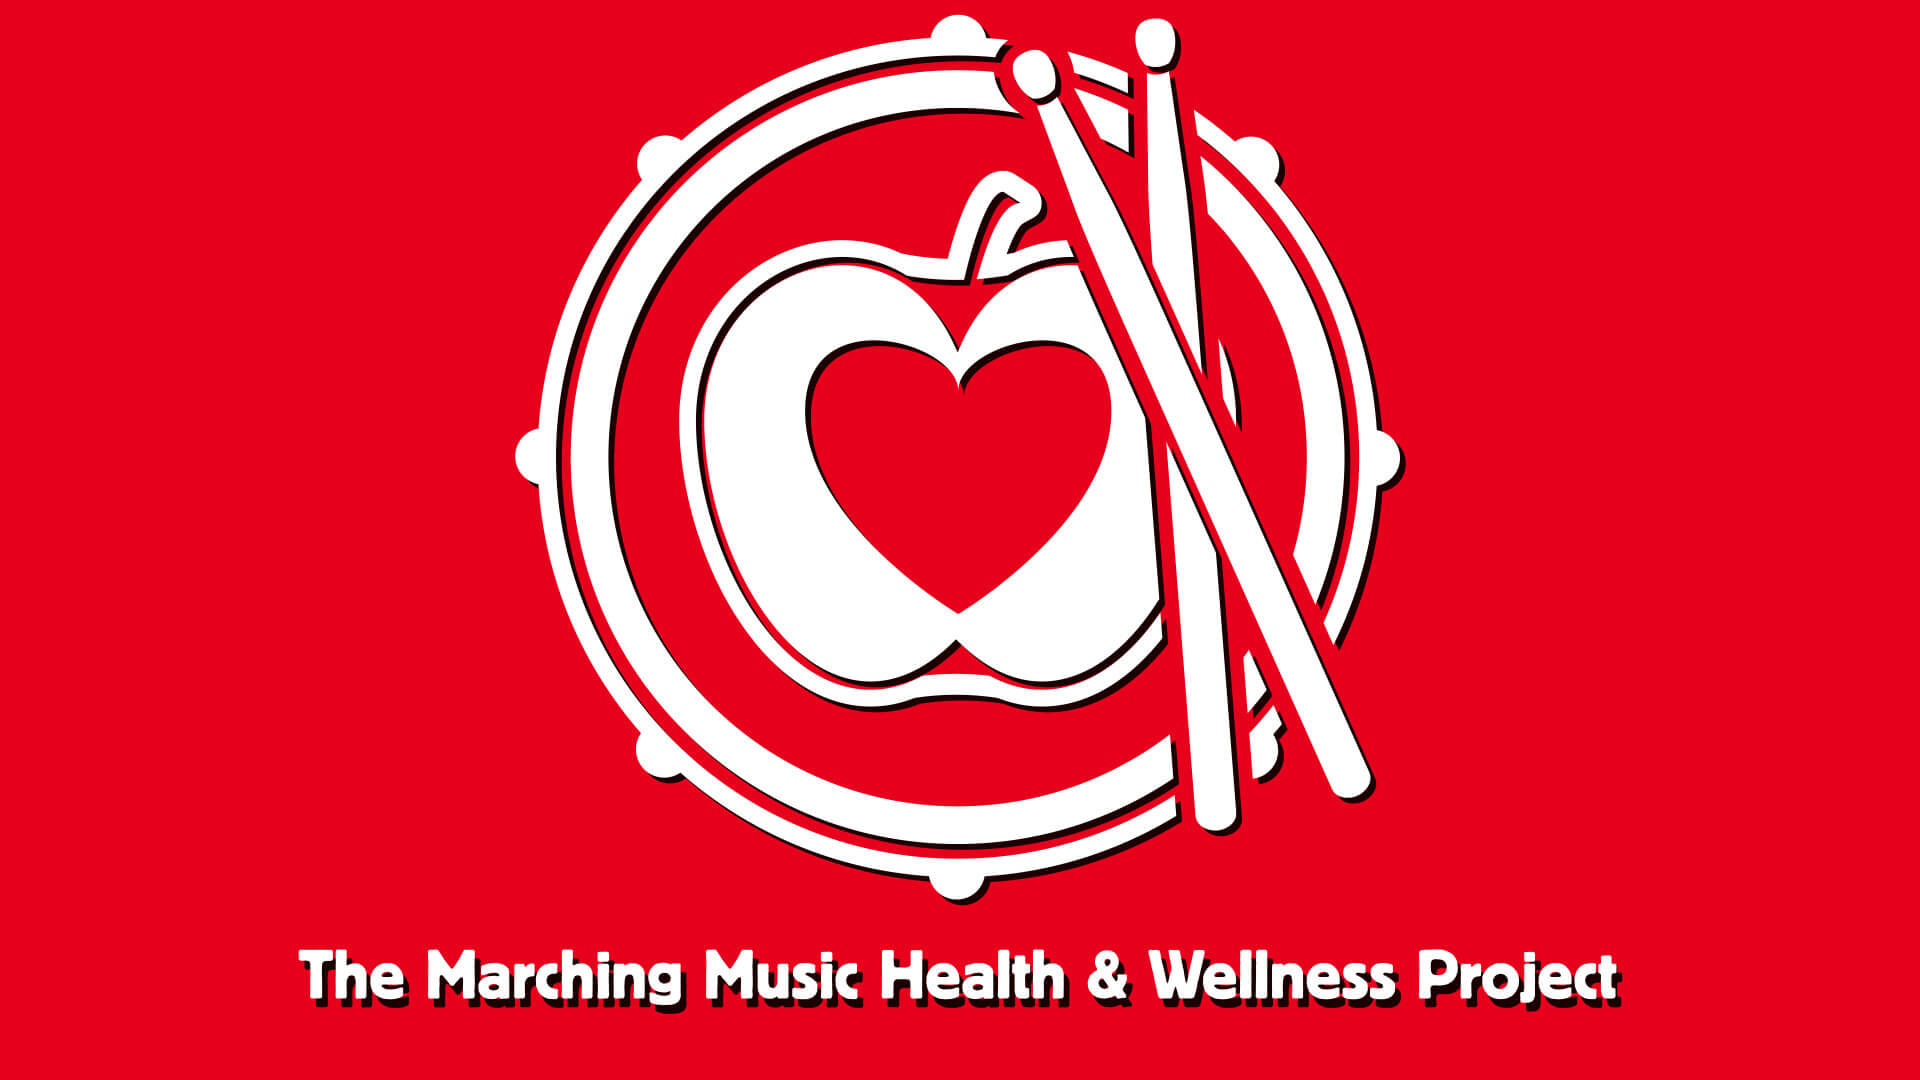 Health and Wellness Project expands, seeks additional volunteer professionals